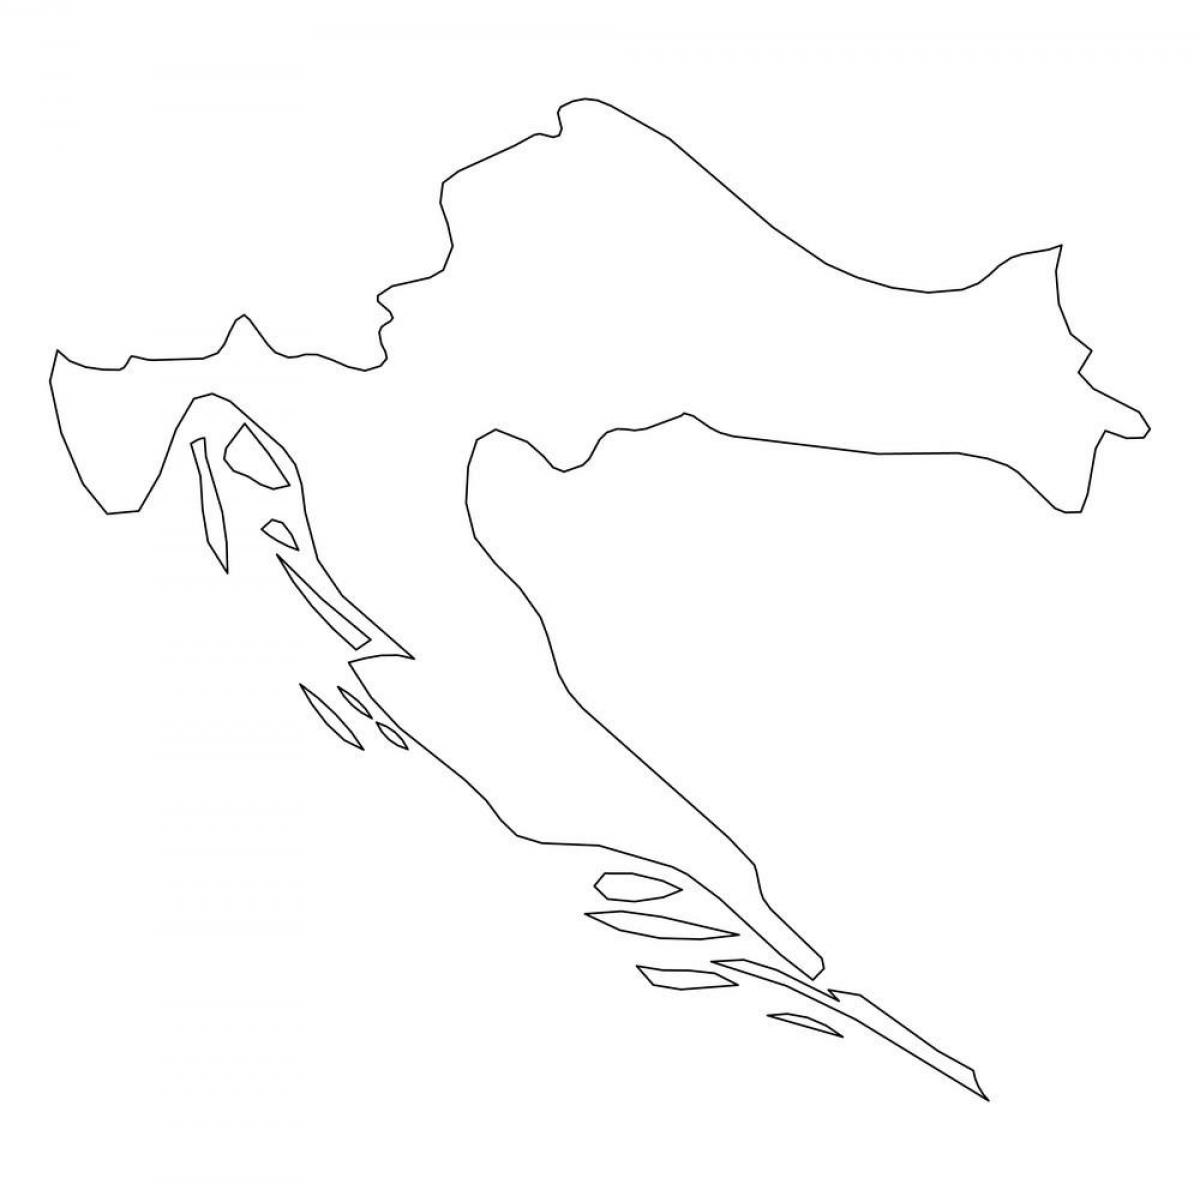 Croatia contours map